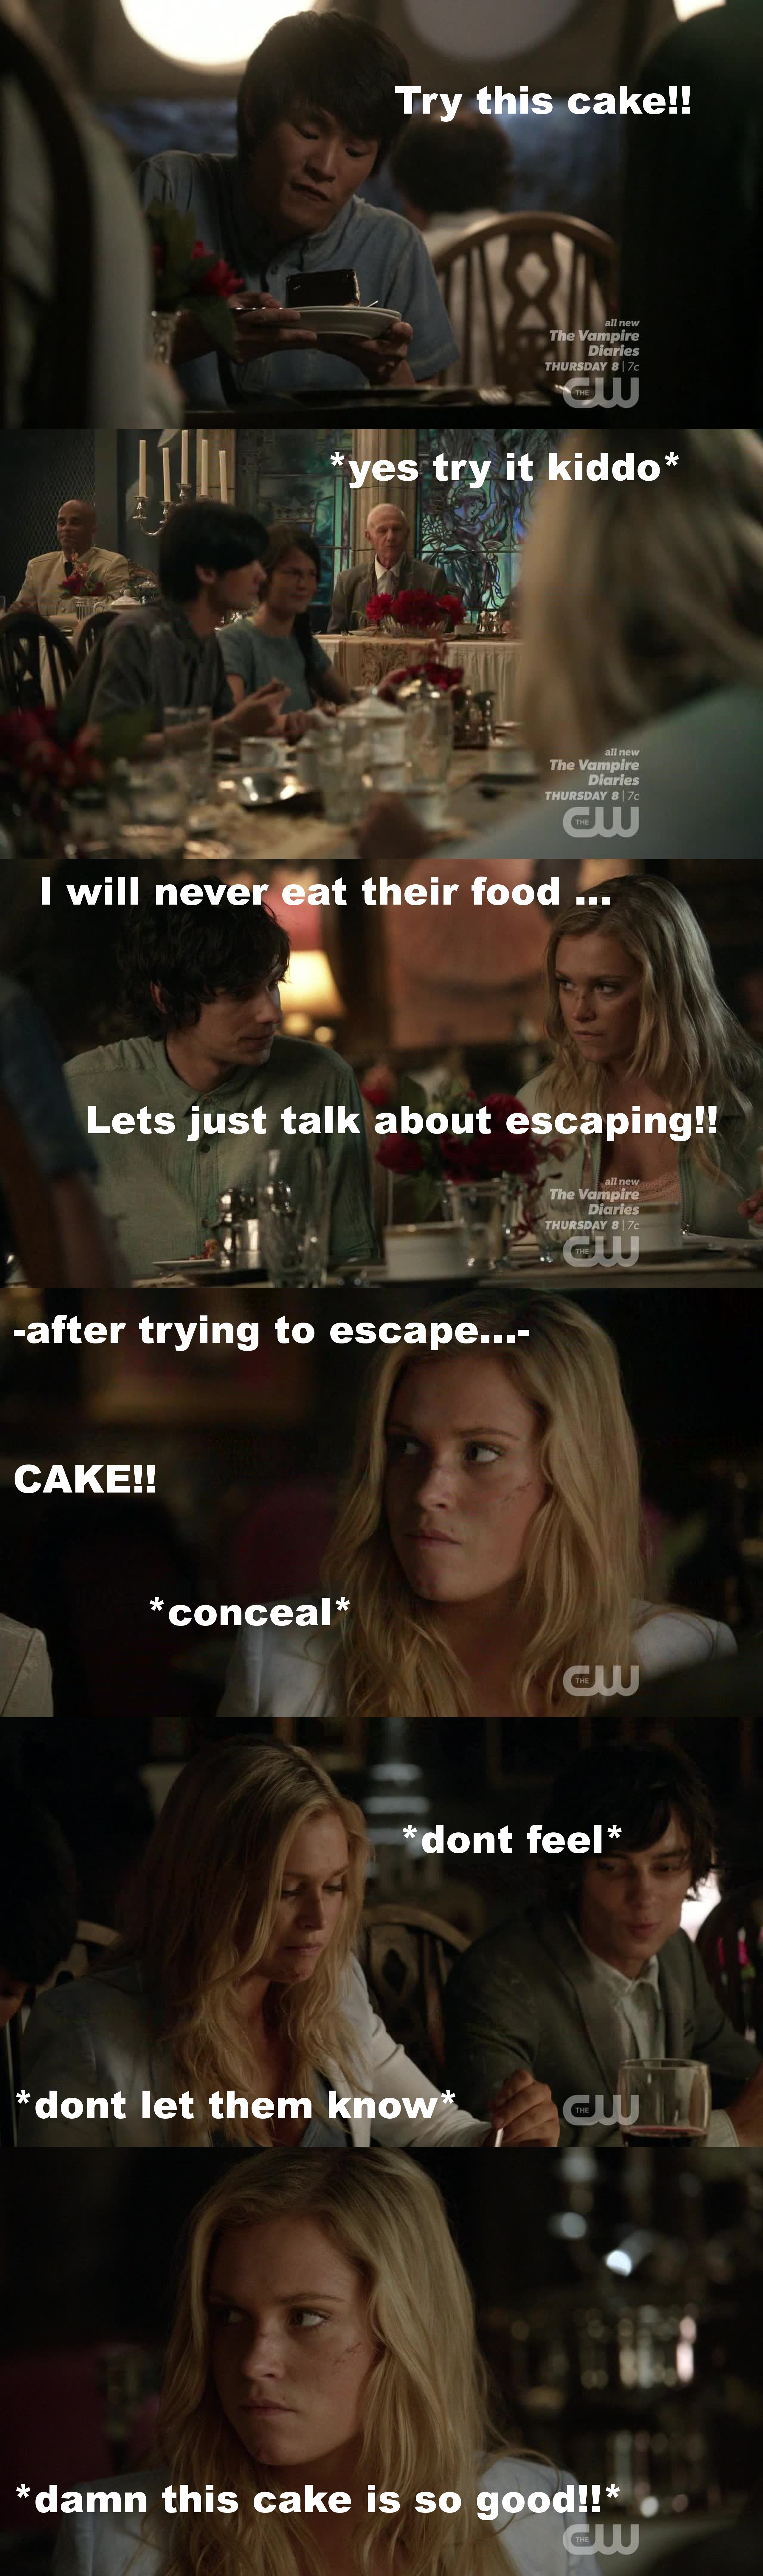 Episode 1 : Clarke trying to escape from the cake.